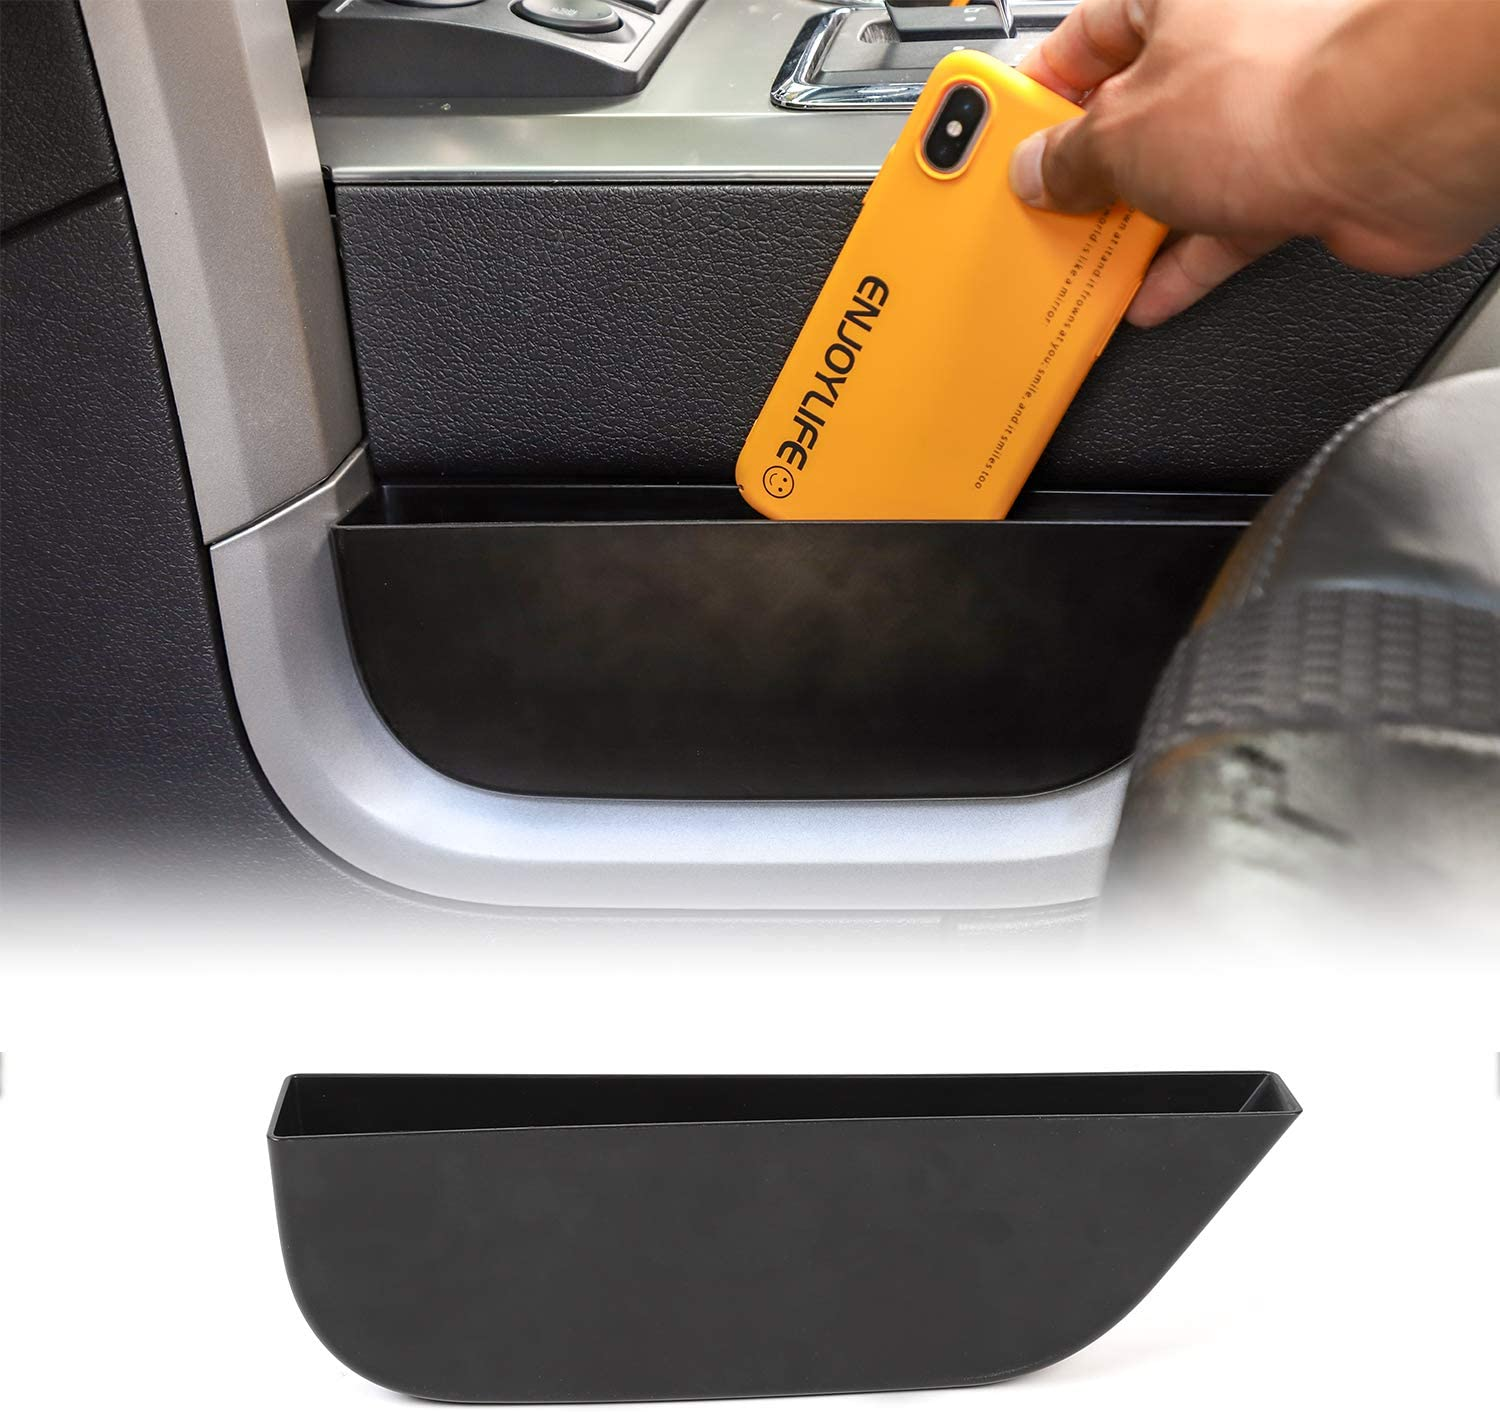 Voodonala GearTray Gear Shifter Console Side Storage Box Manual Transmission Organizer Tray for Ford F150 2009-2014